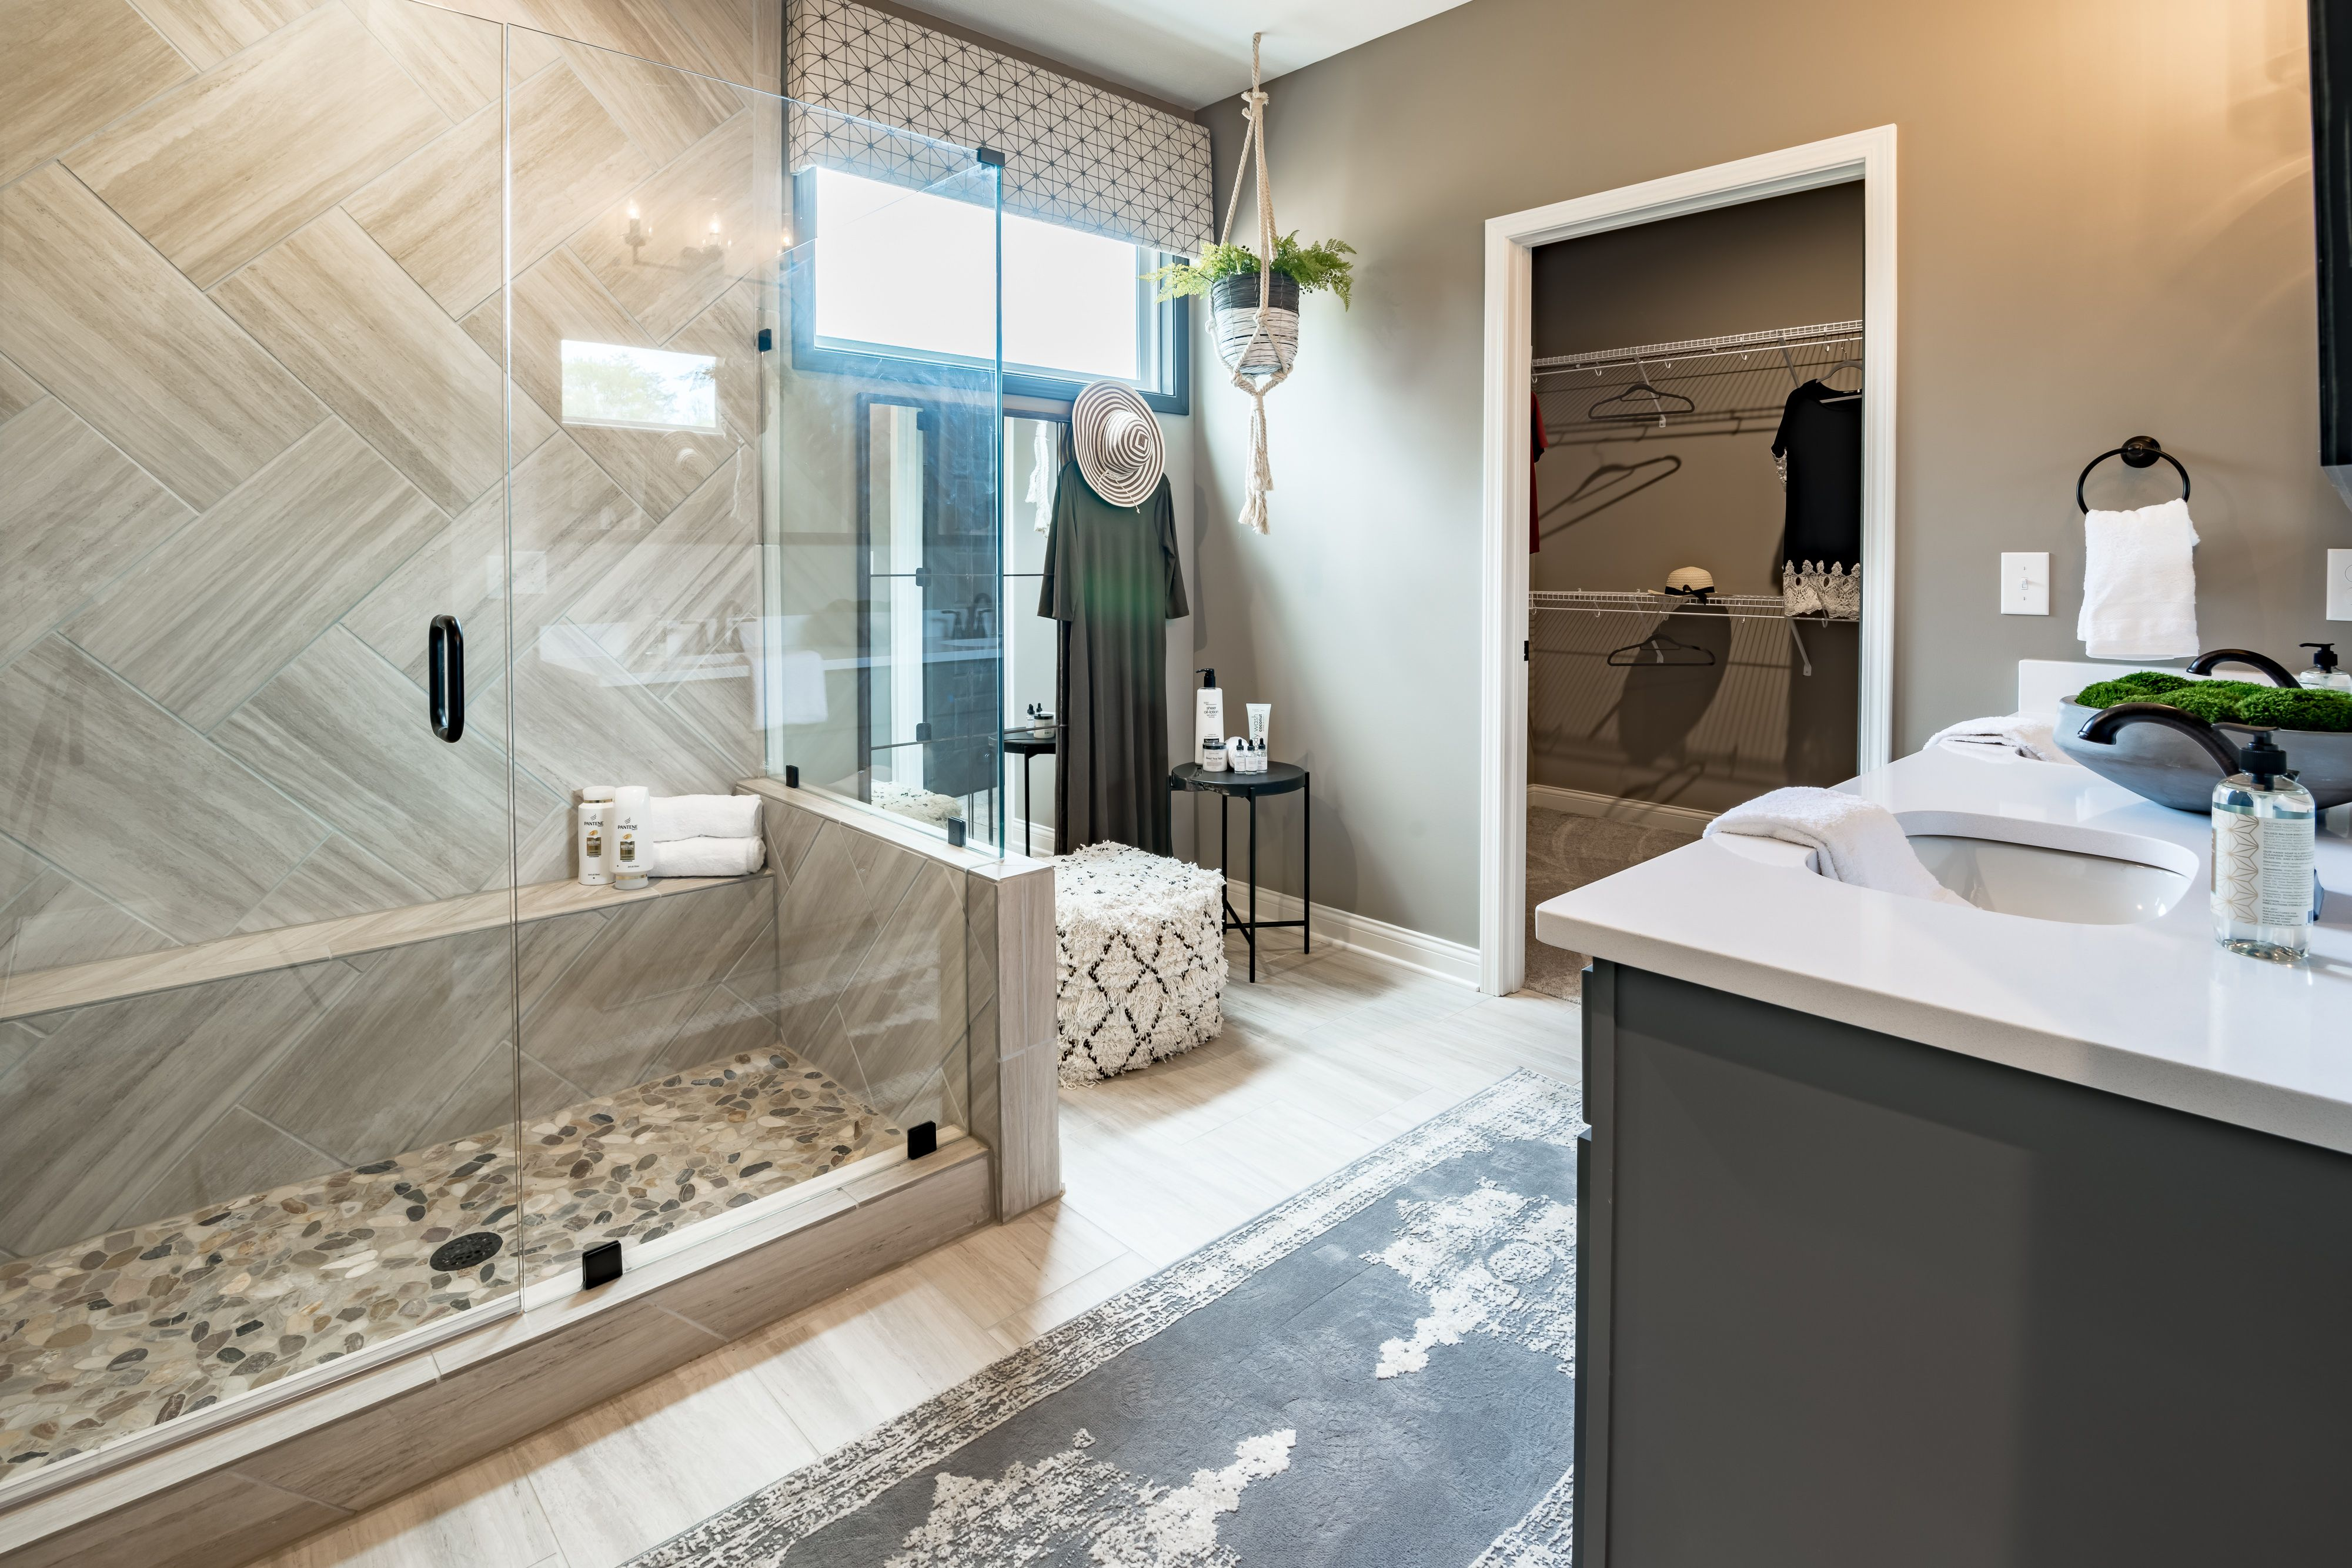 Bathroom featured in the Maxwell By Fischer Homes  in Cincinnati, OH